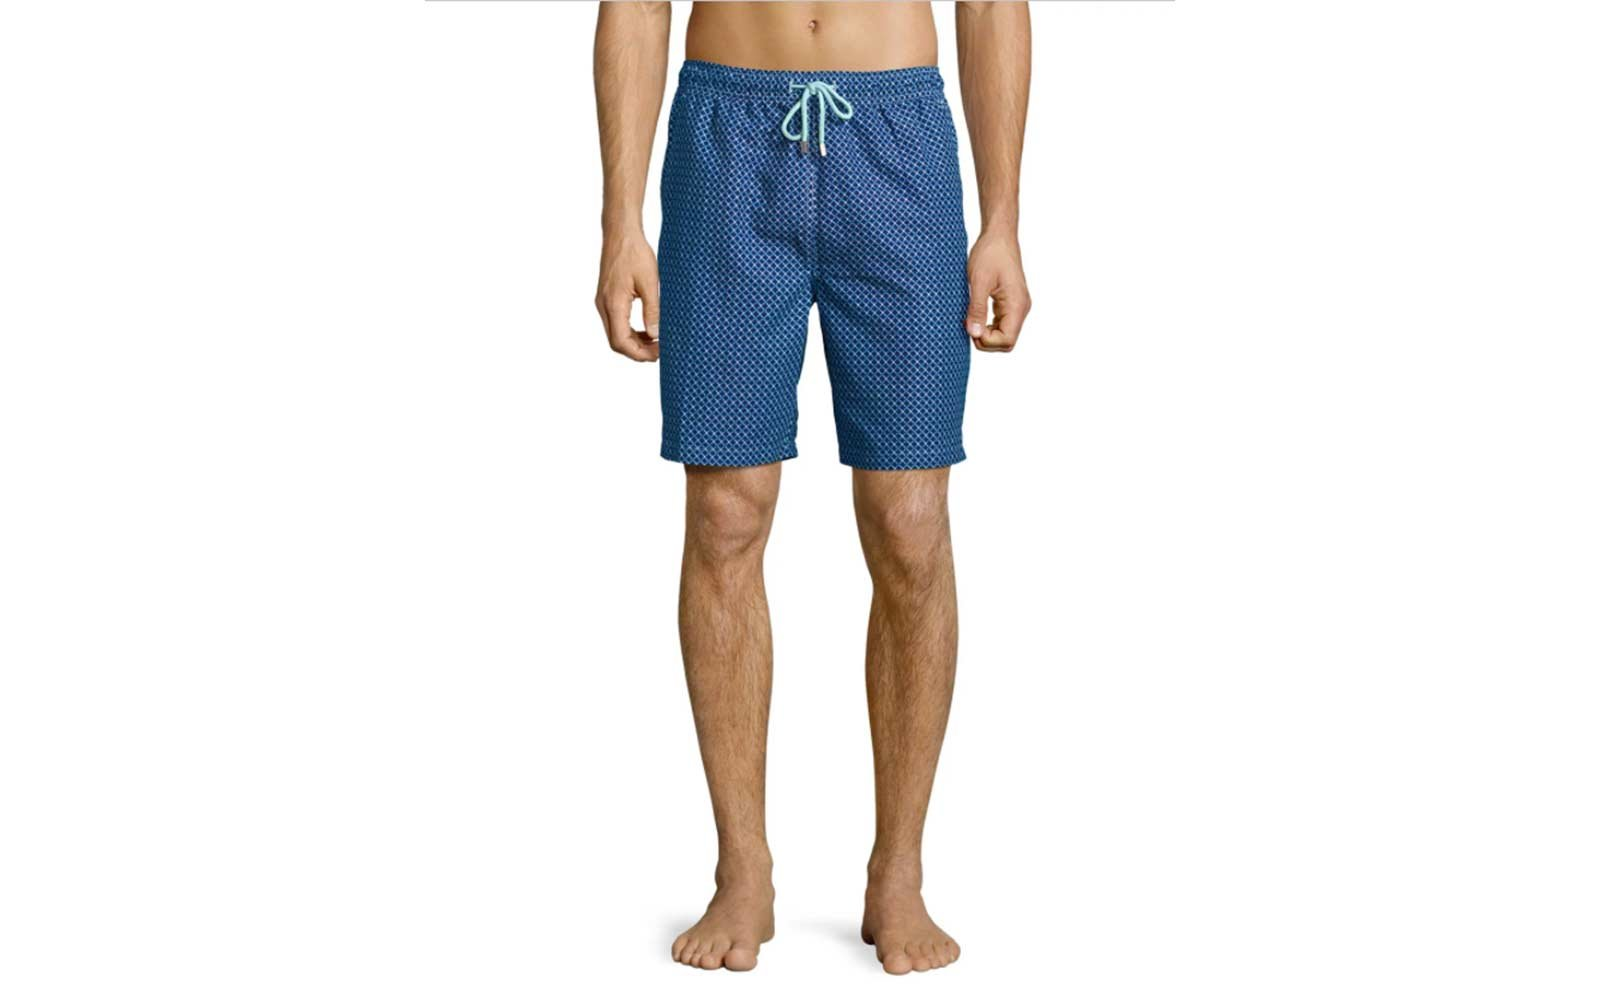 e520a14efd The Best Men's Swimsuits for Spring Break | Travel + Leisure